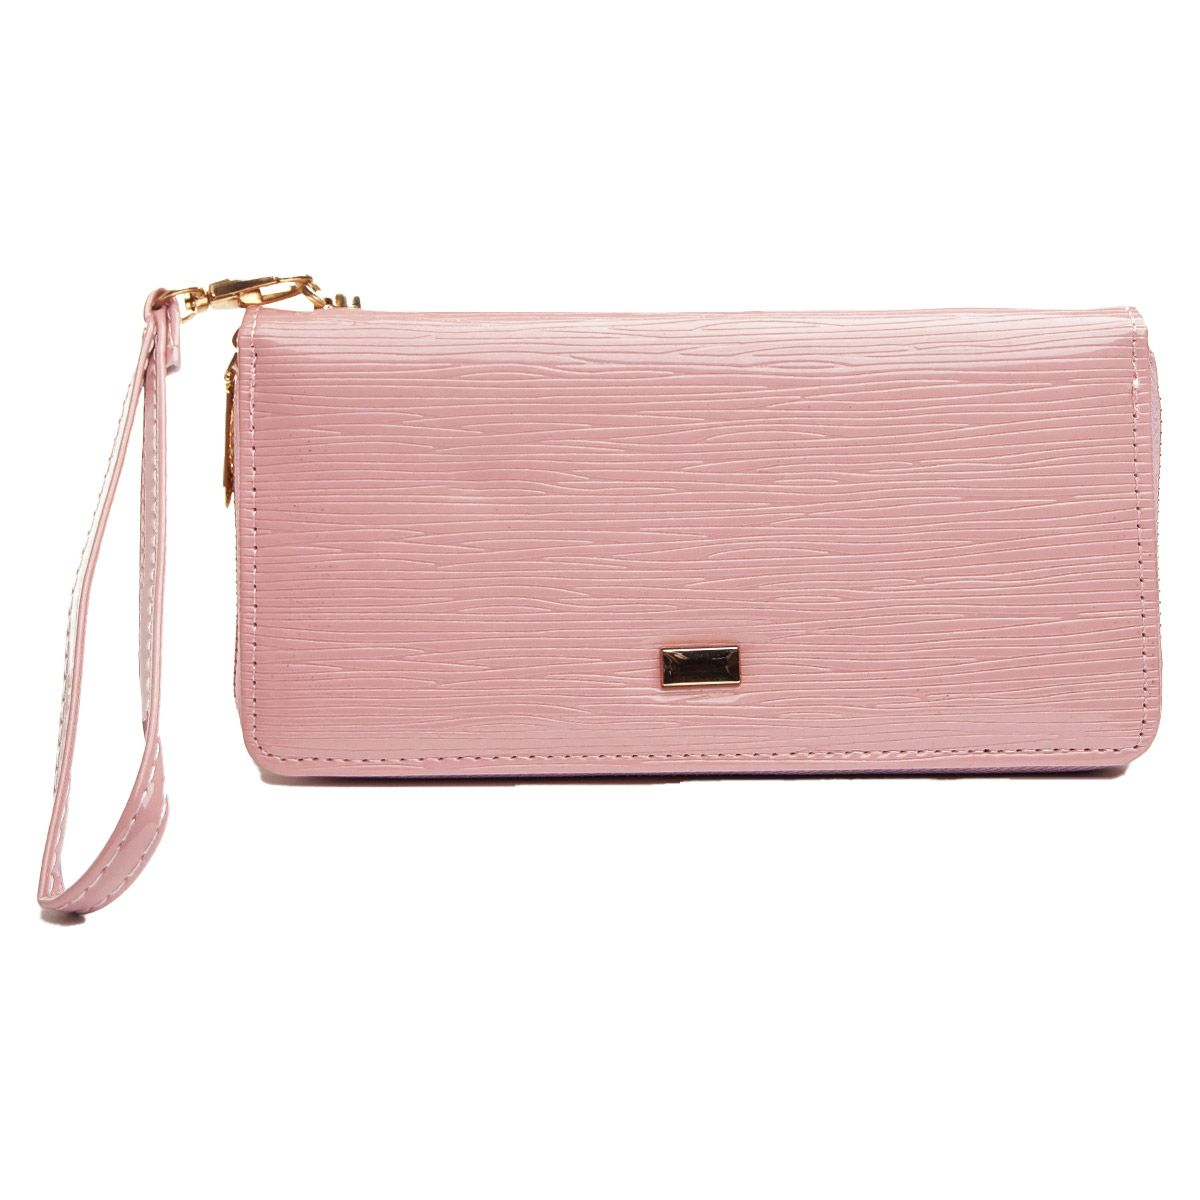 Montevita Leather Purse in Pink